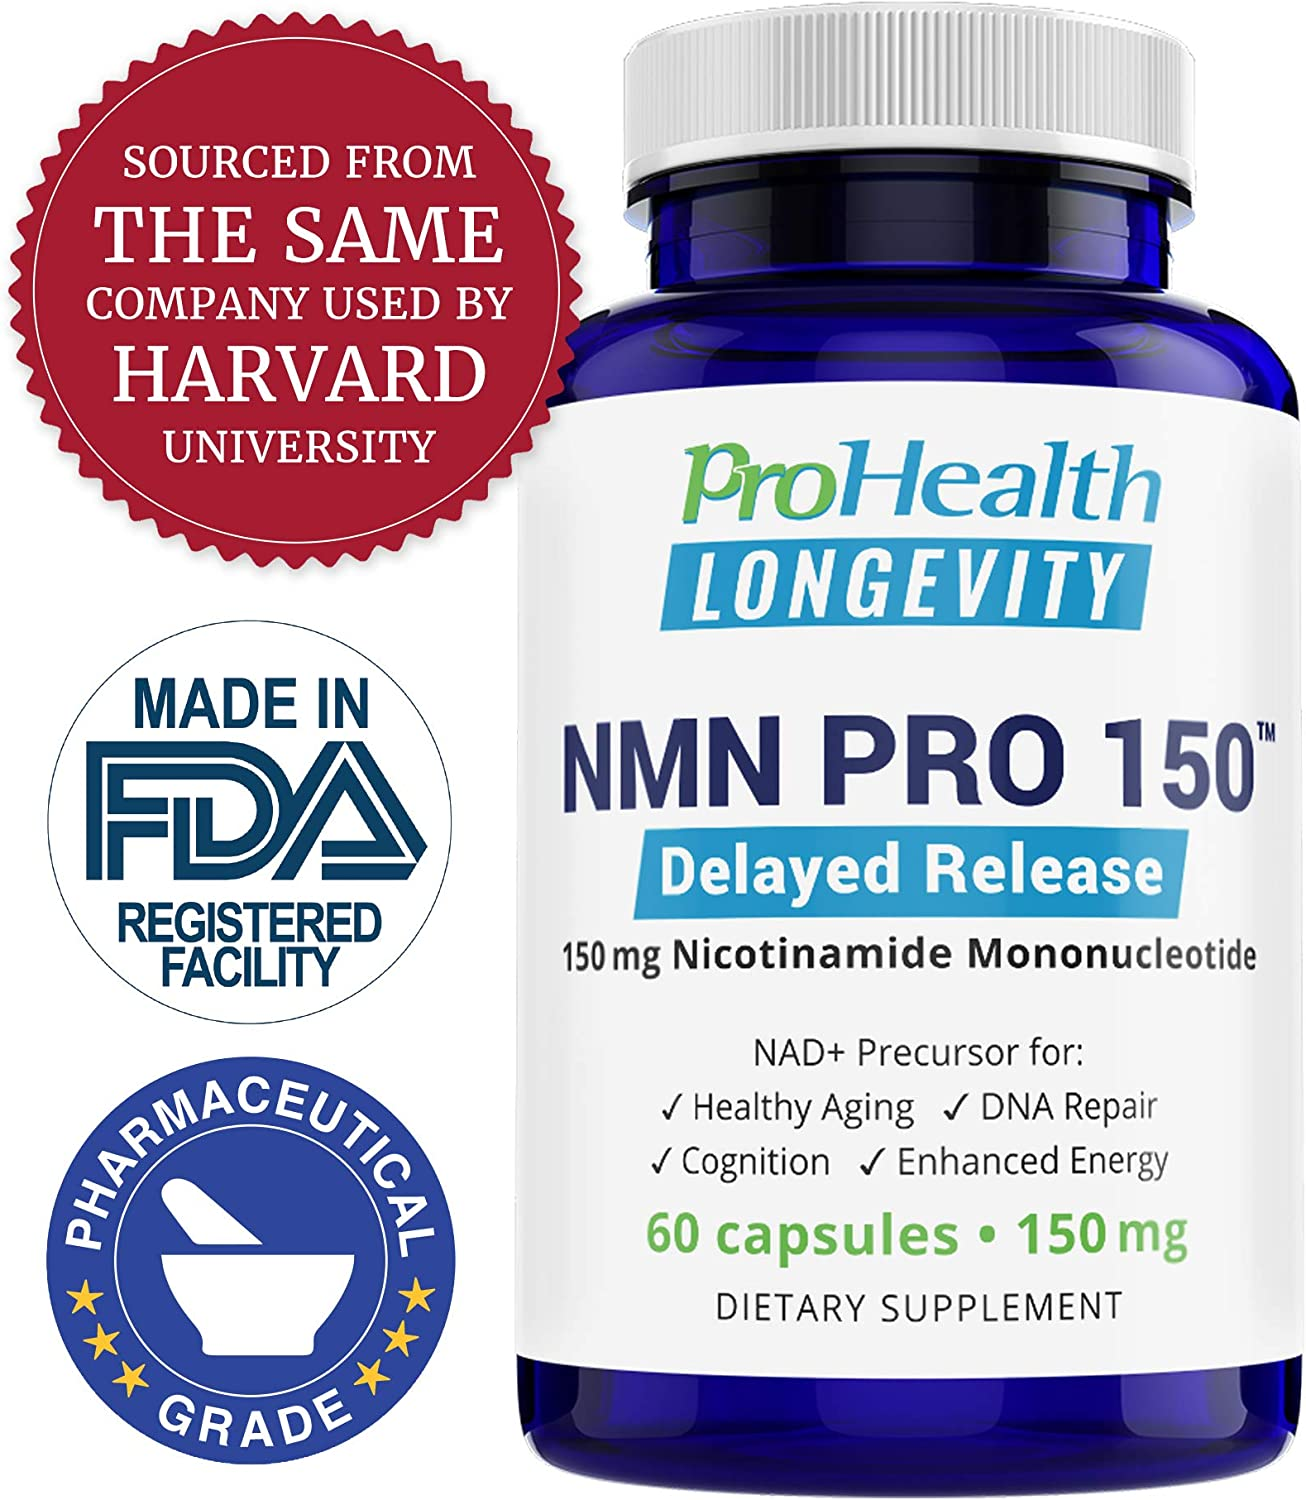 ProHealth NMN Pro Delayed Release 150 mg, 60 Capsules Nicotinamide Mononucleotide NAD Precursor Supports Anti-Aging, Longevity and Energy Non-GMO